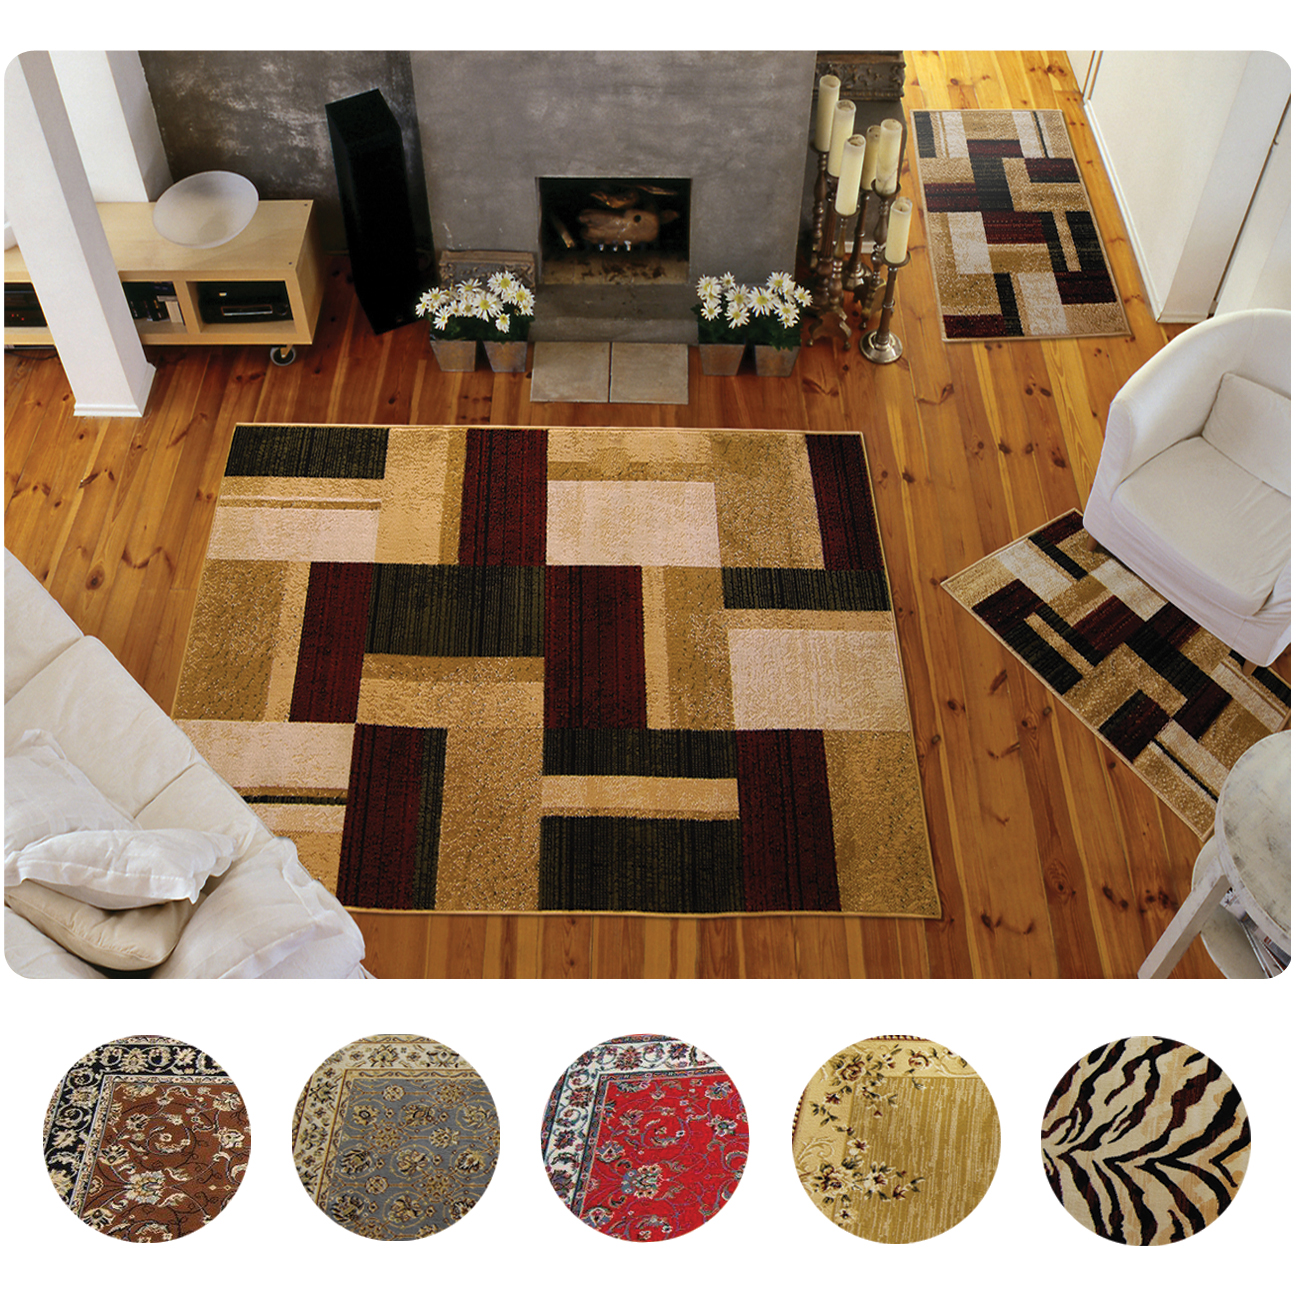 Where To Buy Cheap Rugs